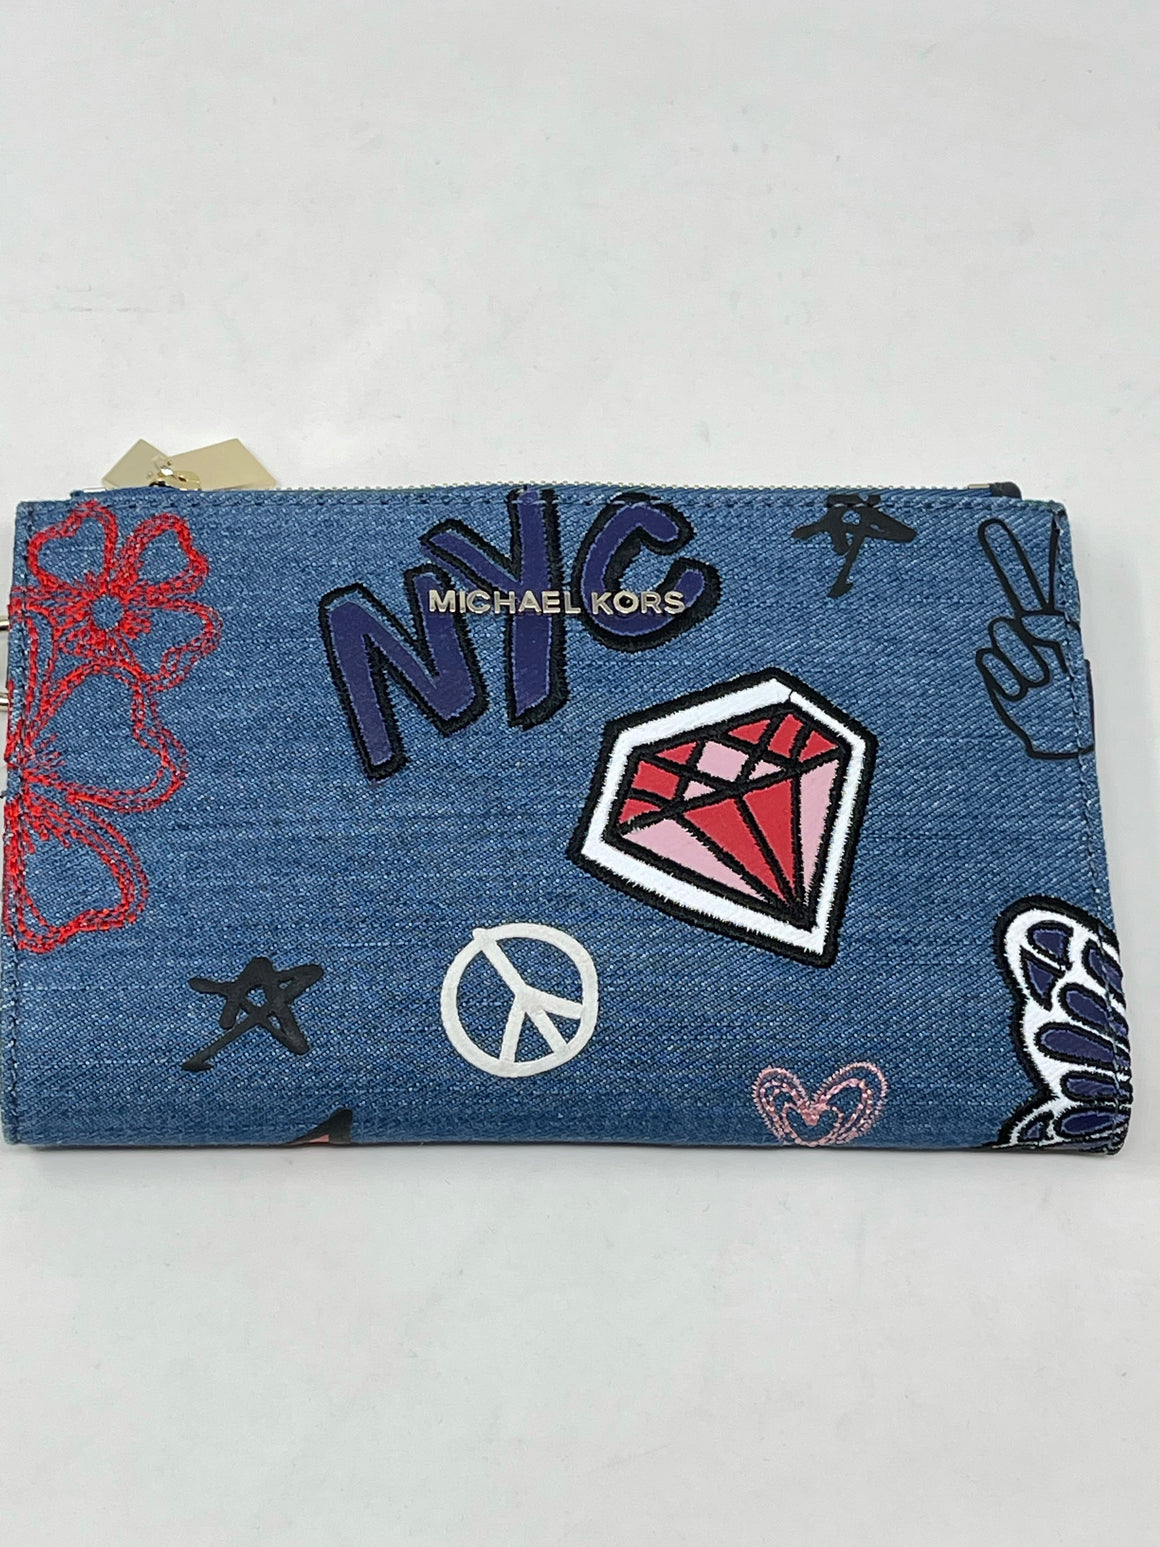 Michael Kors Denim Wallet!